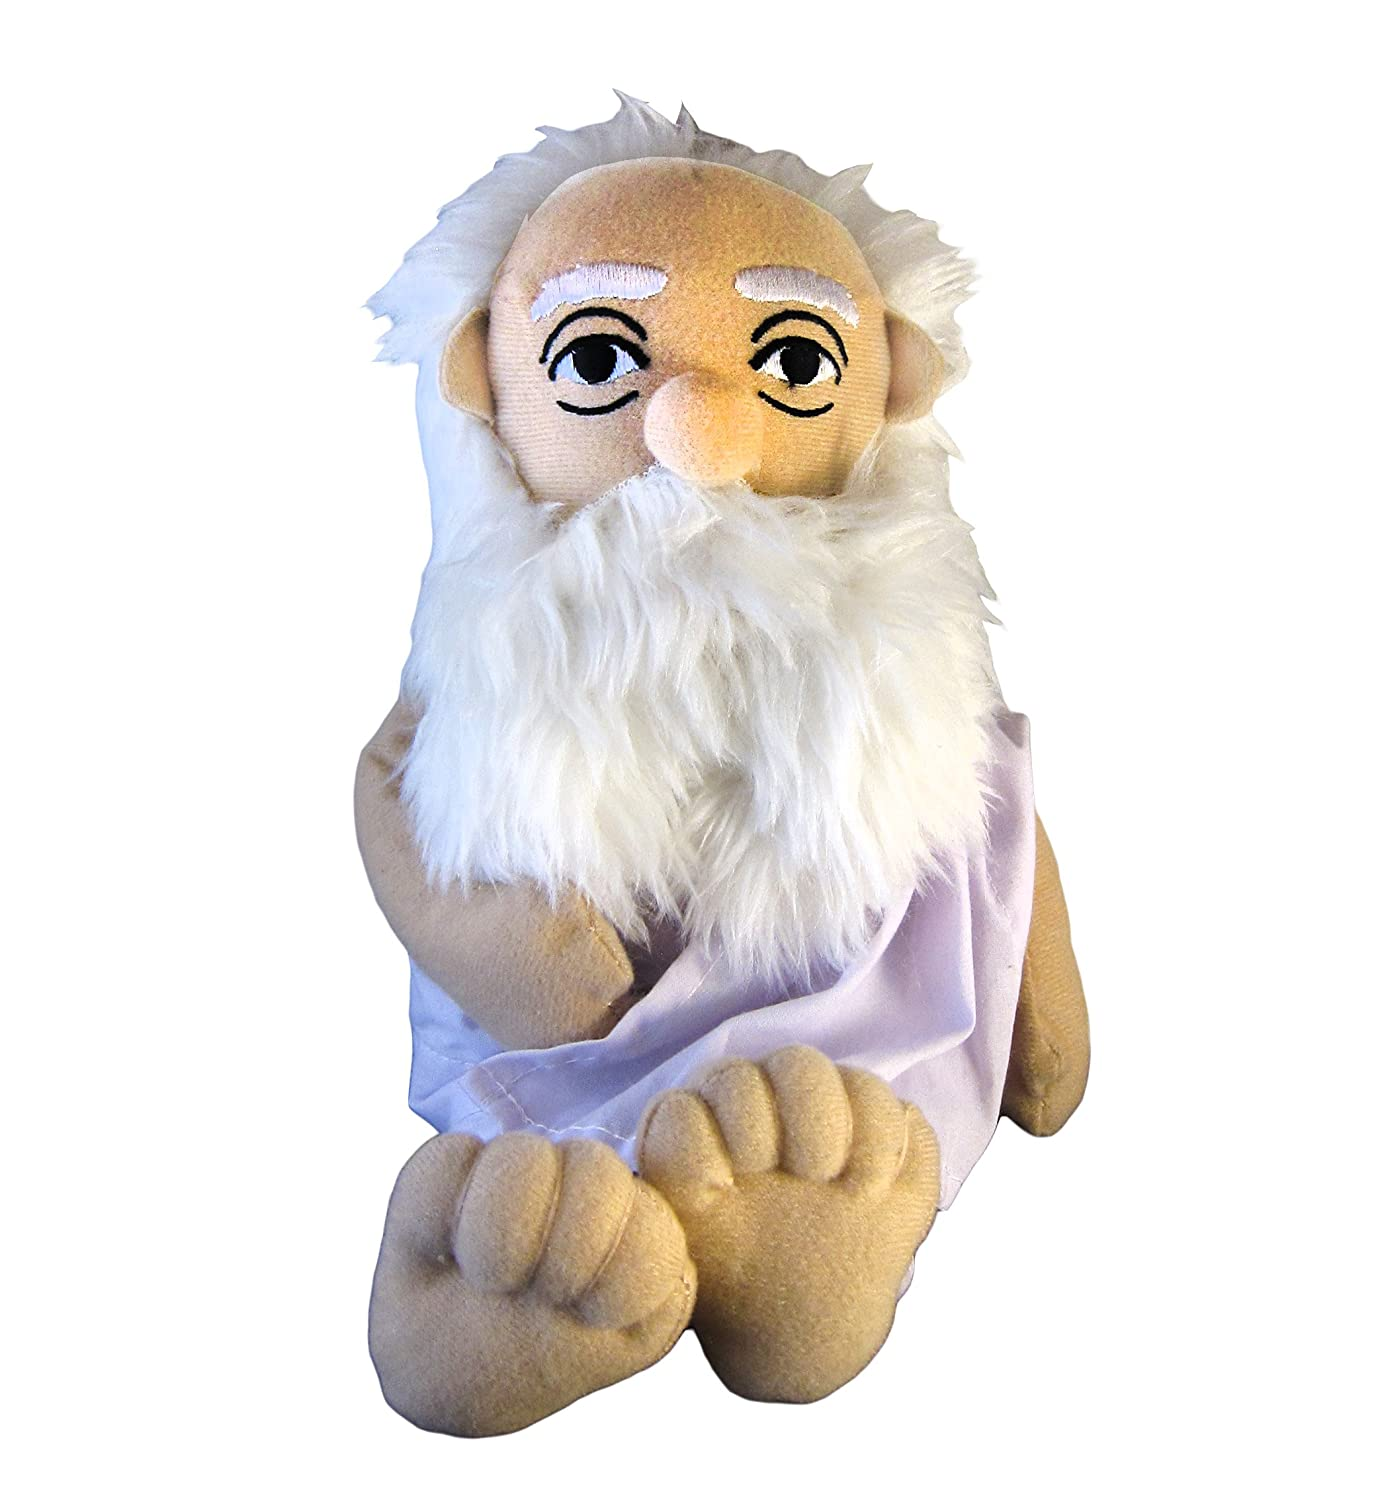 Socrates Plush Doll